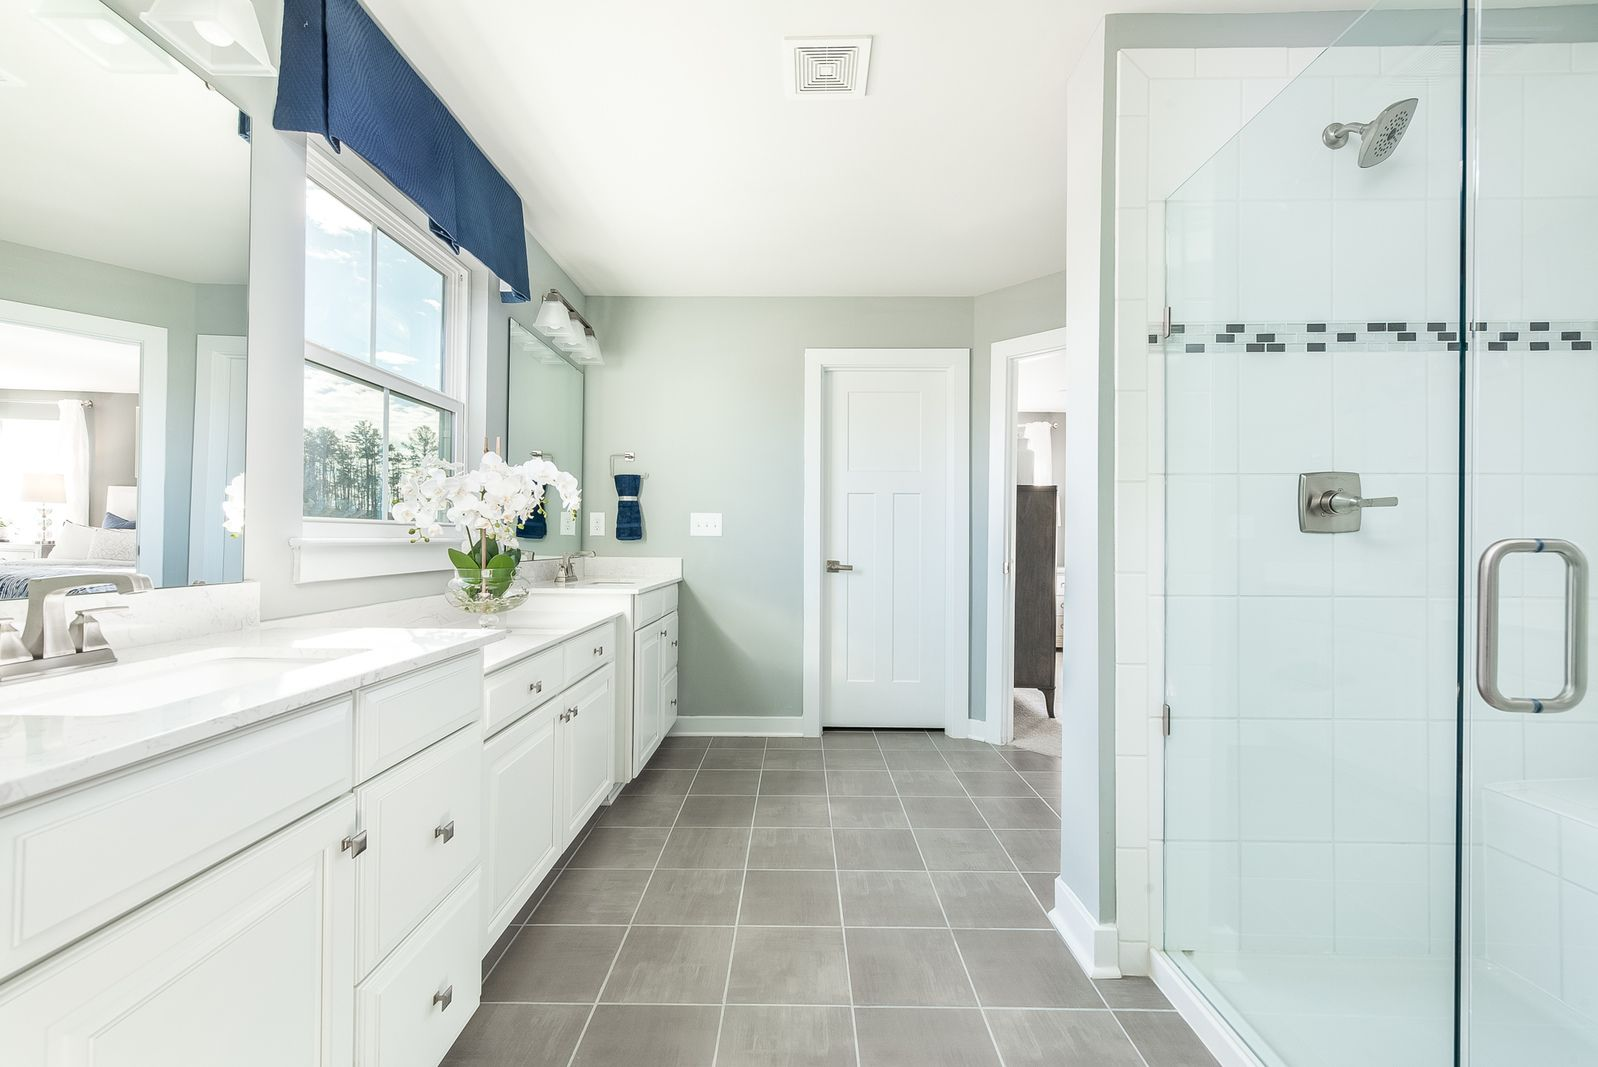 Bathroom featured in the Lehigh By Ryan Homes in Columbia, SC